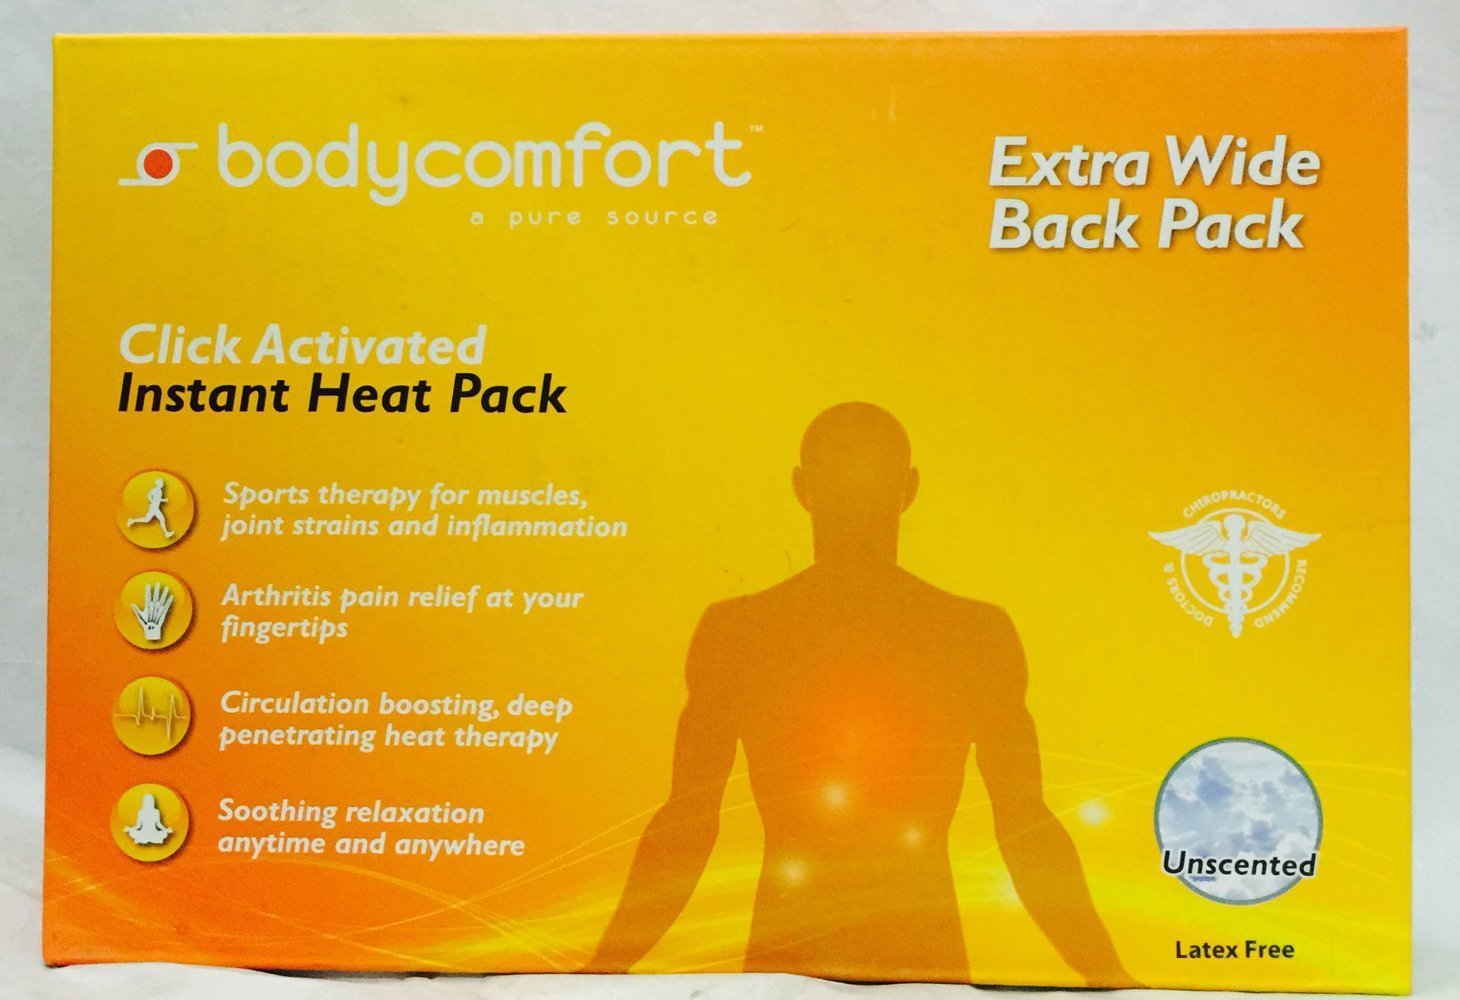 Bodycomfort Click Activated Instant Heat Pack-Extra Wide Back Pack